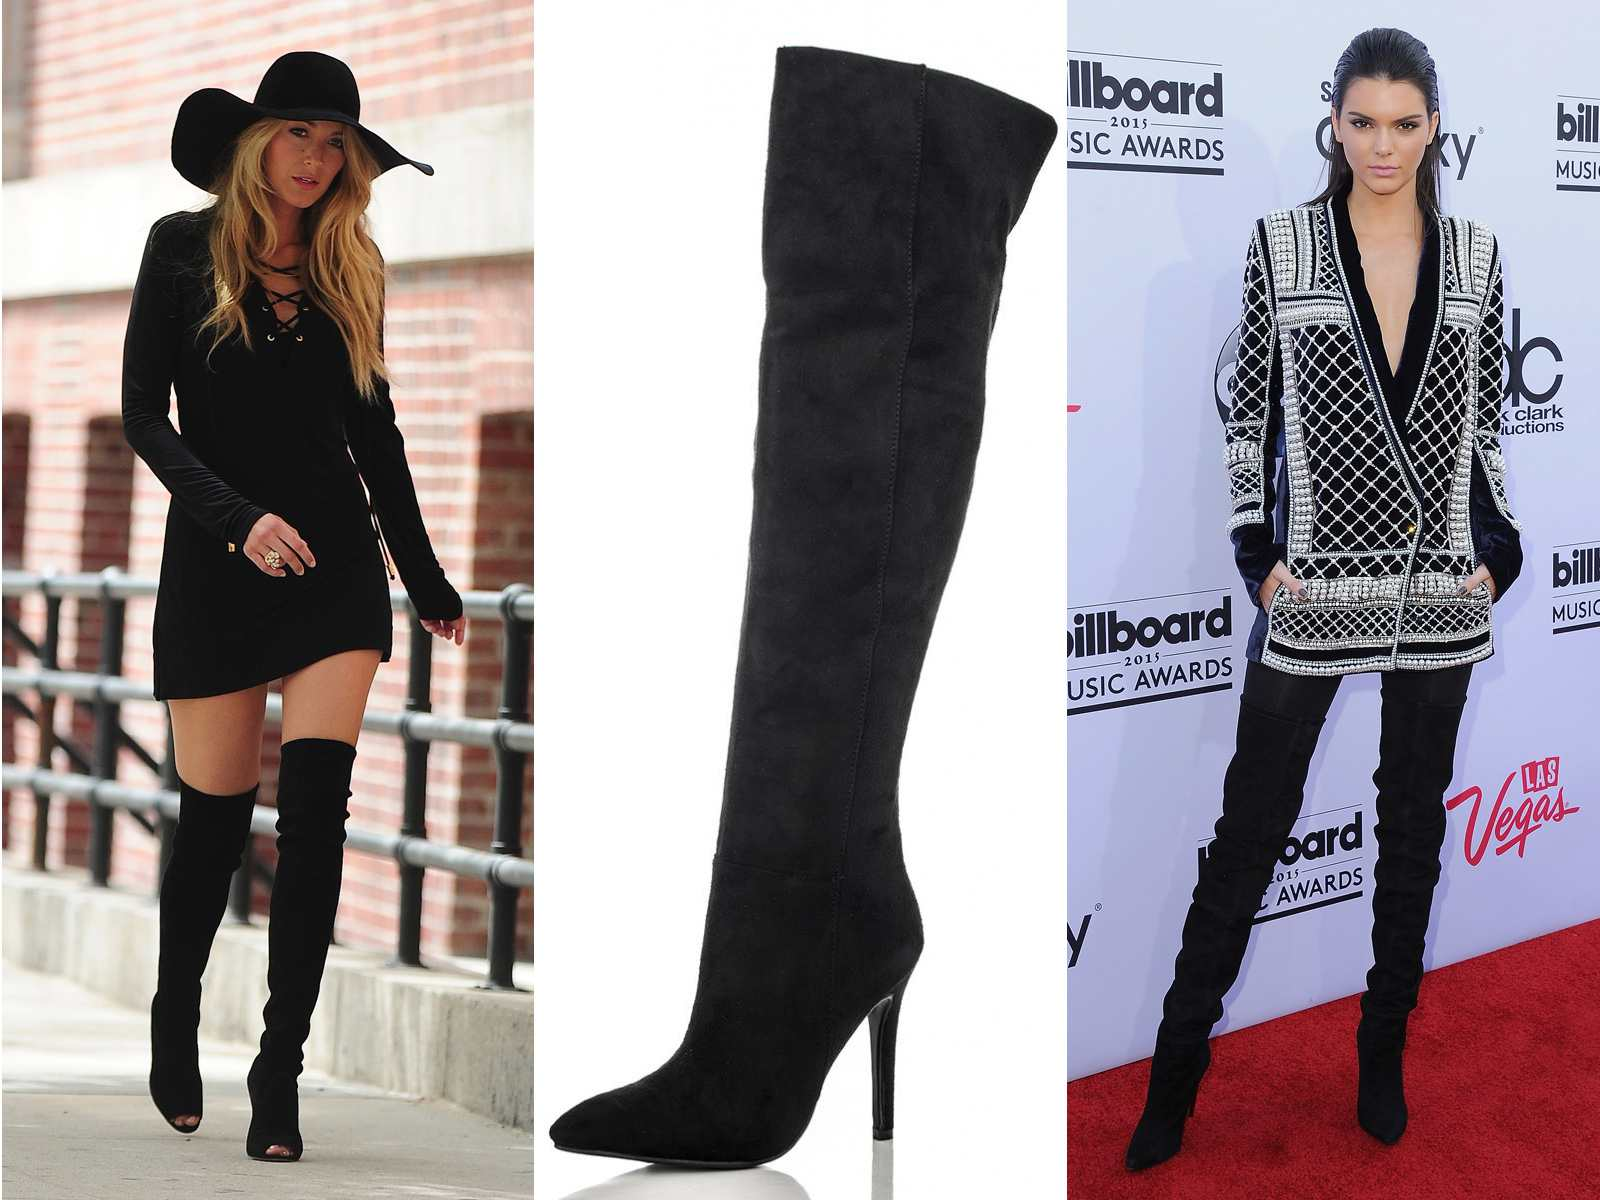 1e1dfda88 Blake Lively and Kendall Jenner wearing over-the-knee boots